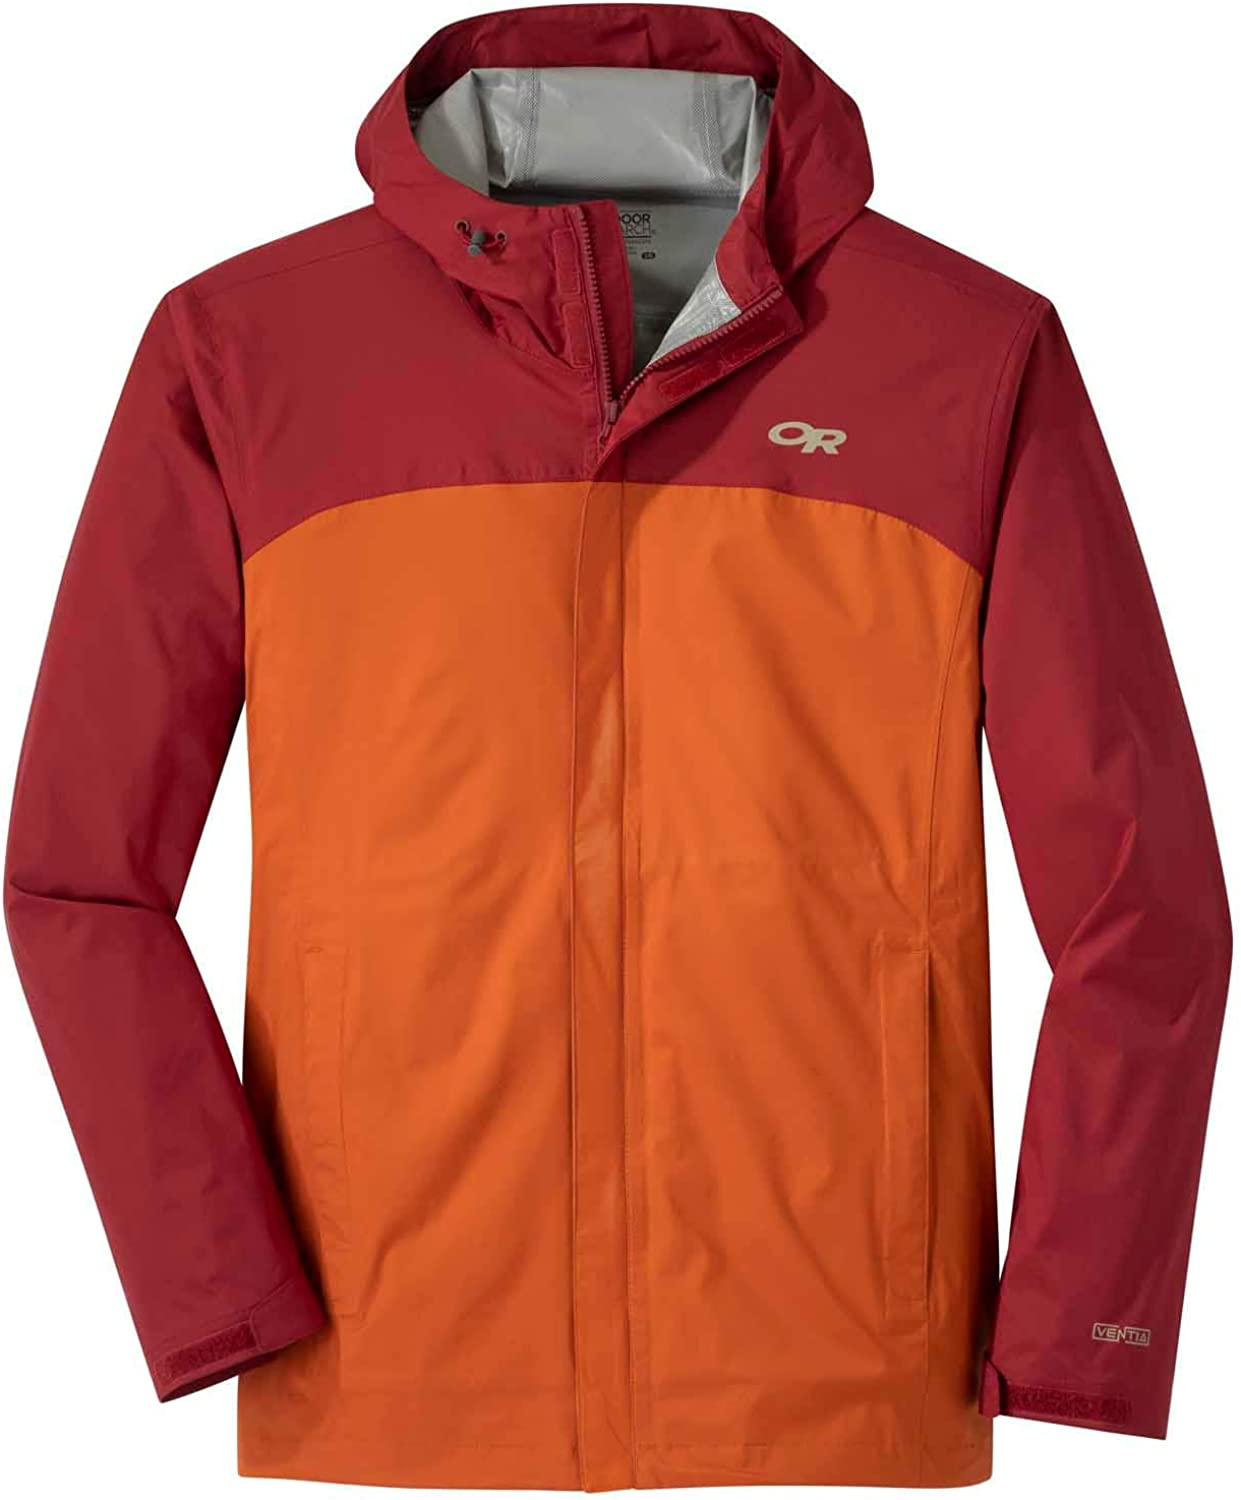 Outdoor Research Men's Apollo Complete Free Shipping Rai latest Waterproof Stretch Lightweight